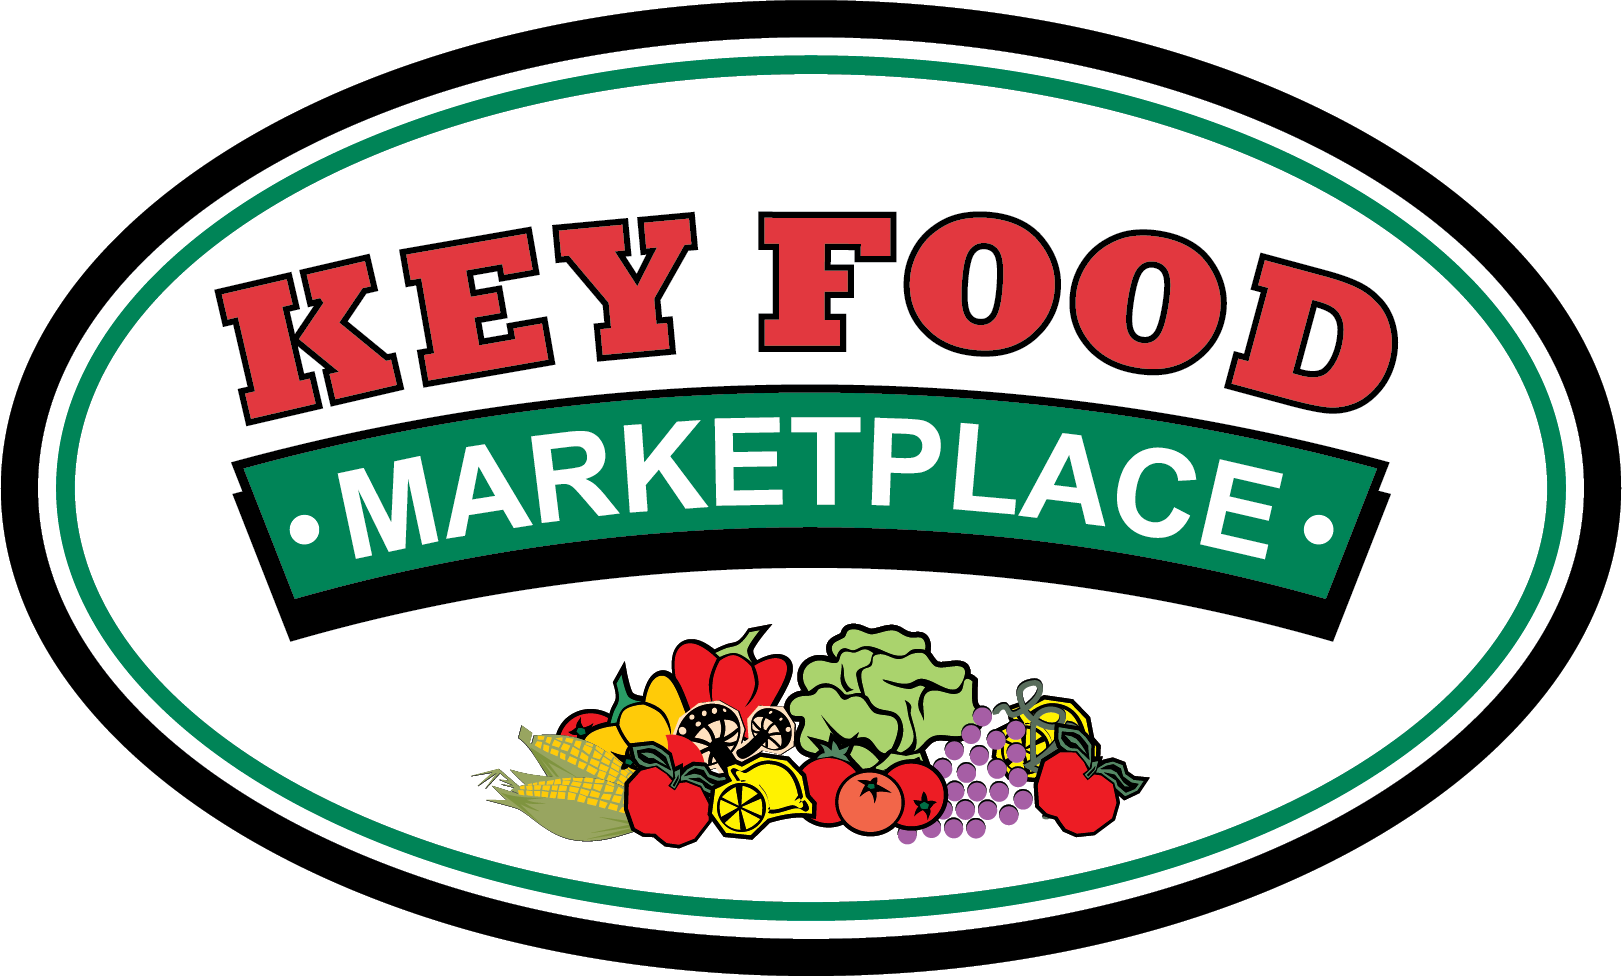 Key-Food-Marketplace-logo.png